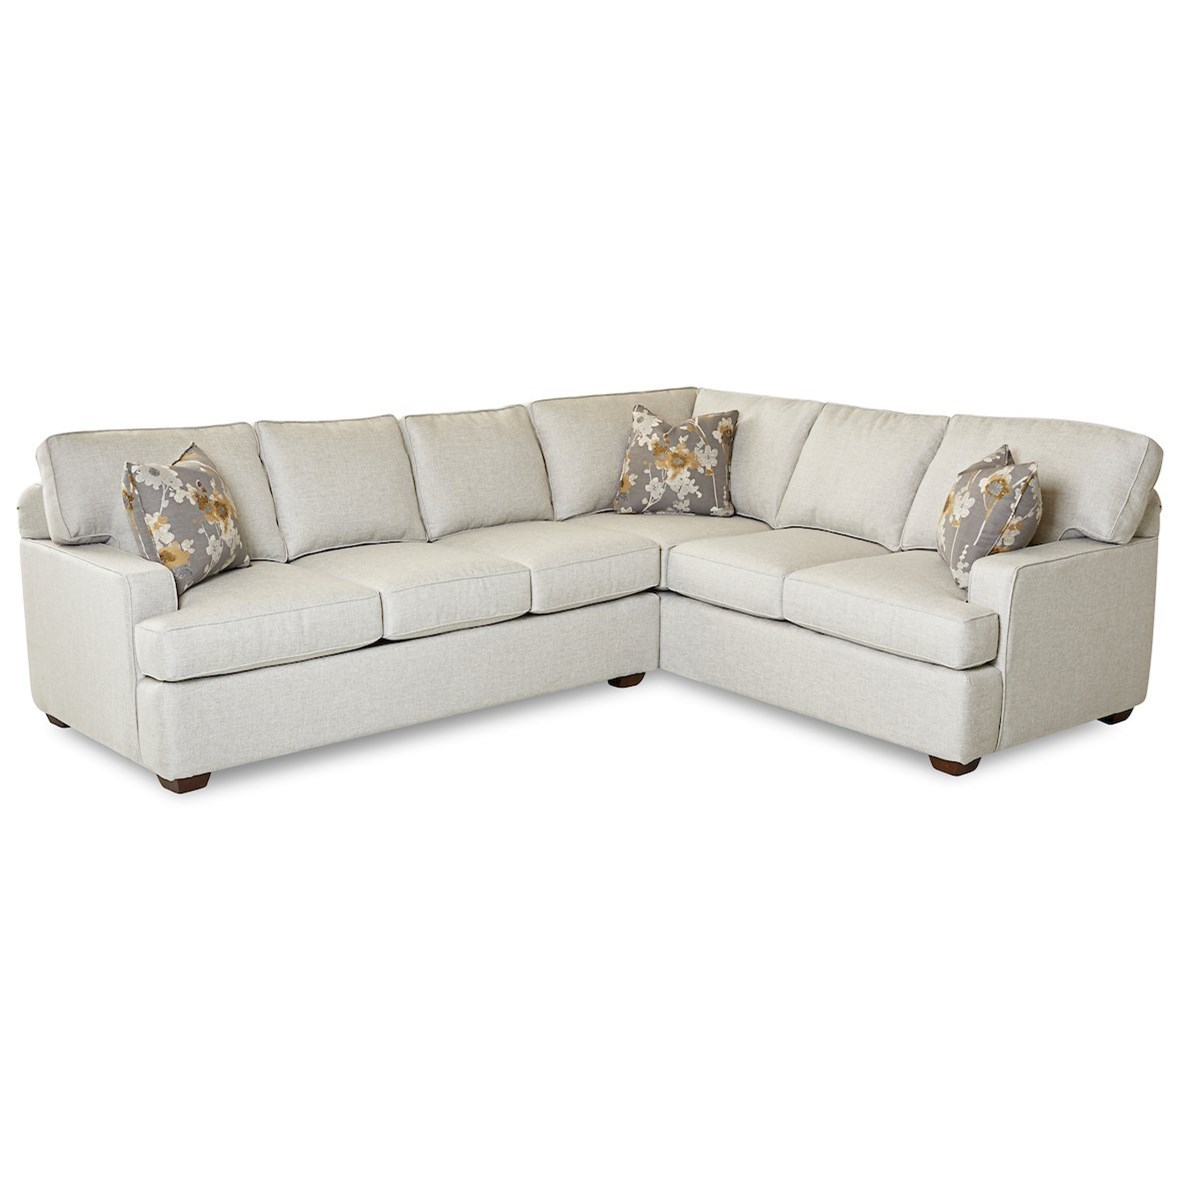 Selection 2-Piece Sectional Sofa w/ LAF Sofa by Klaussner at Catalog Outlet